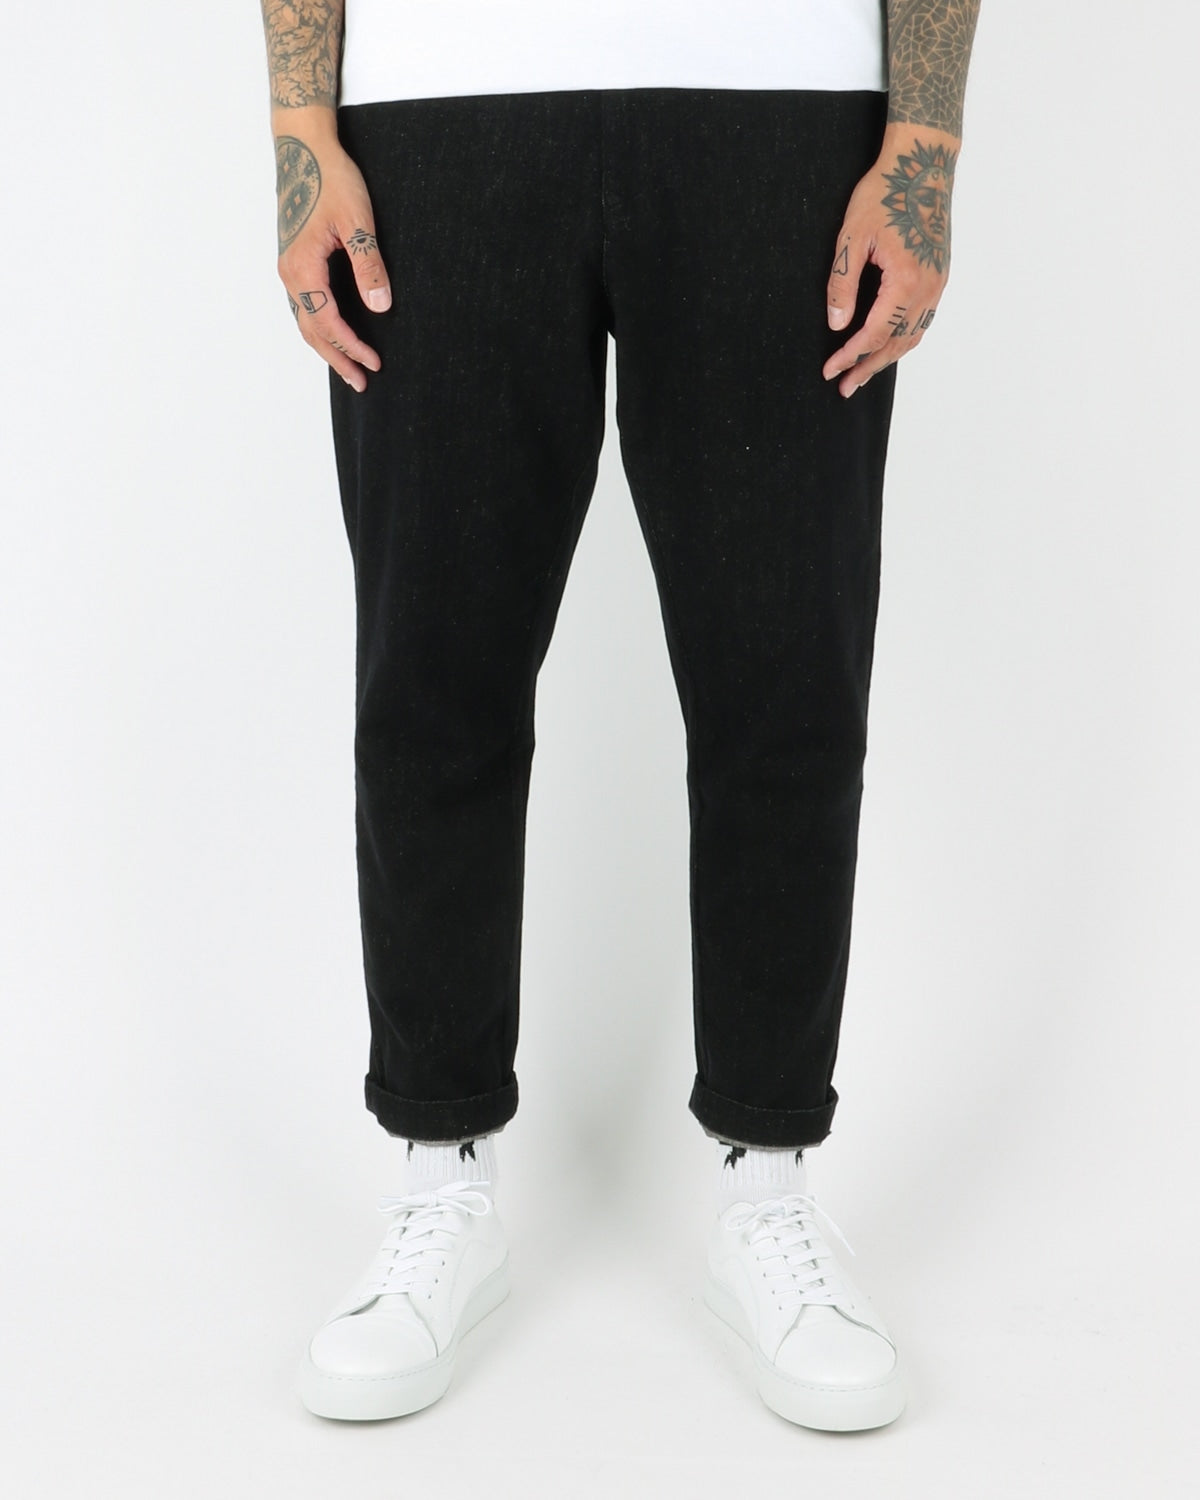 journal clothing_sea brushed pants_black_view_2_3